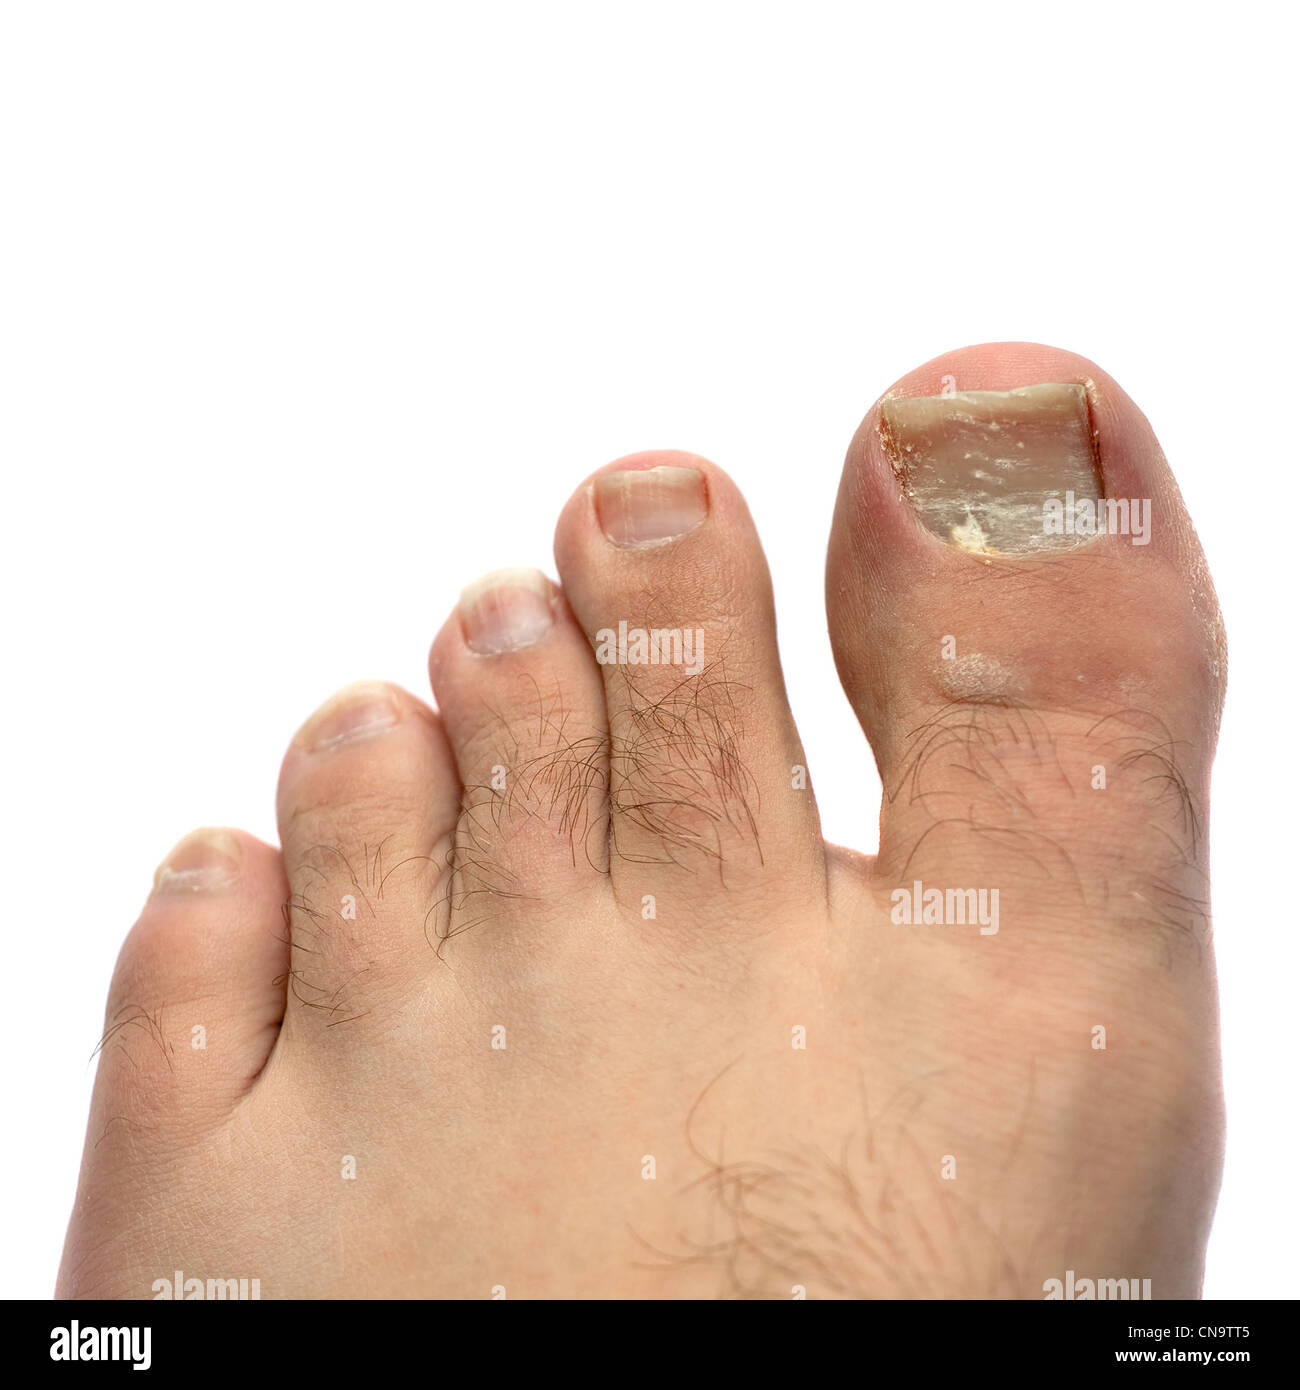 Closeup of a hairy human foot and toes with a cracked and peeling toe nail on the largest toe. - Stock Image